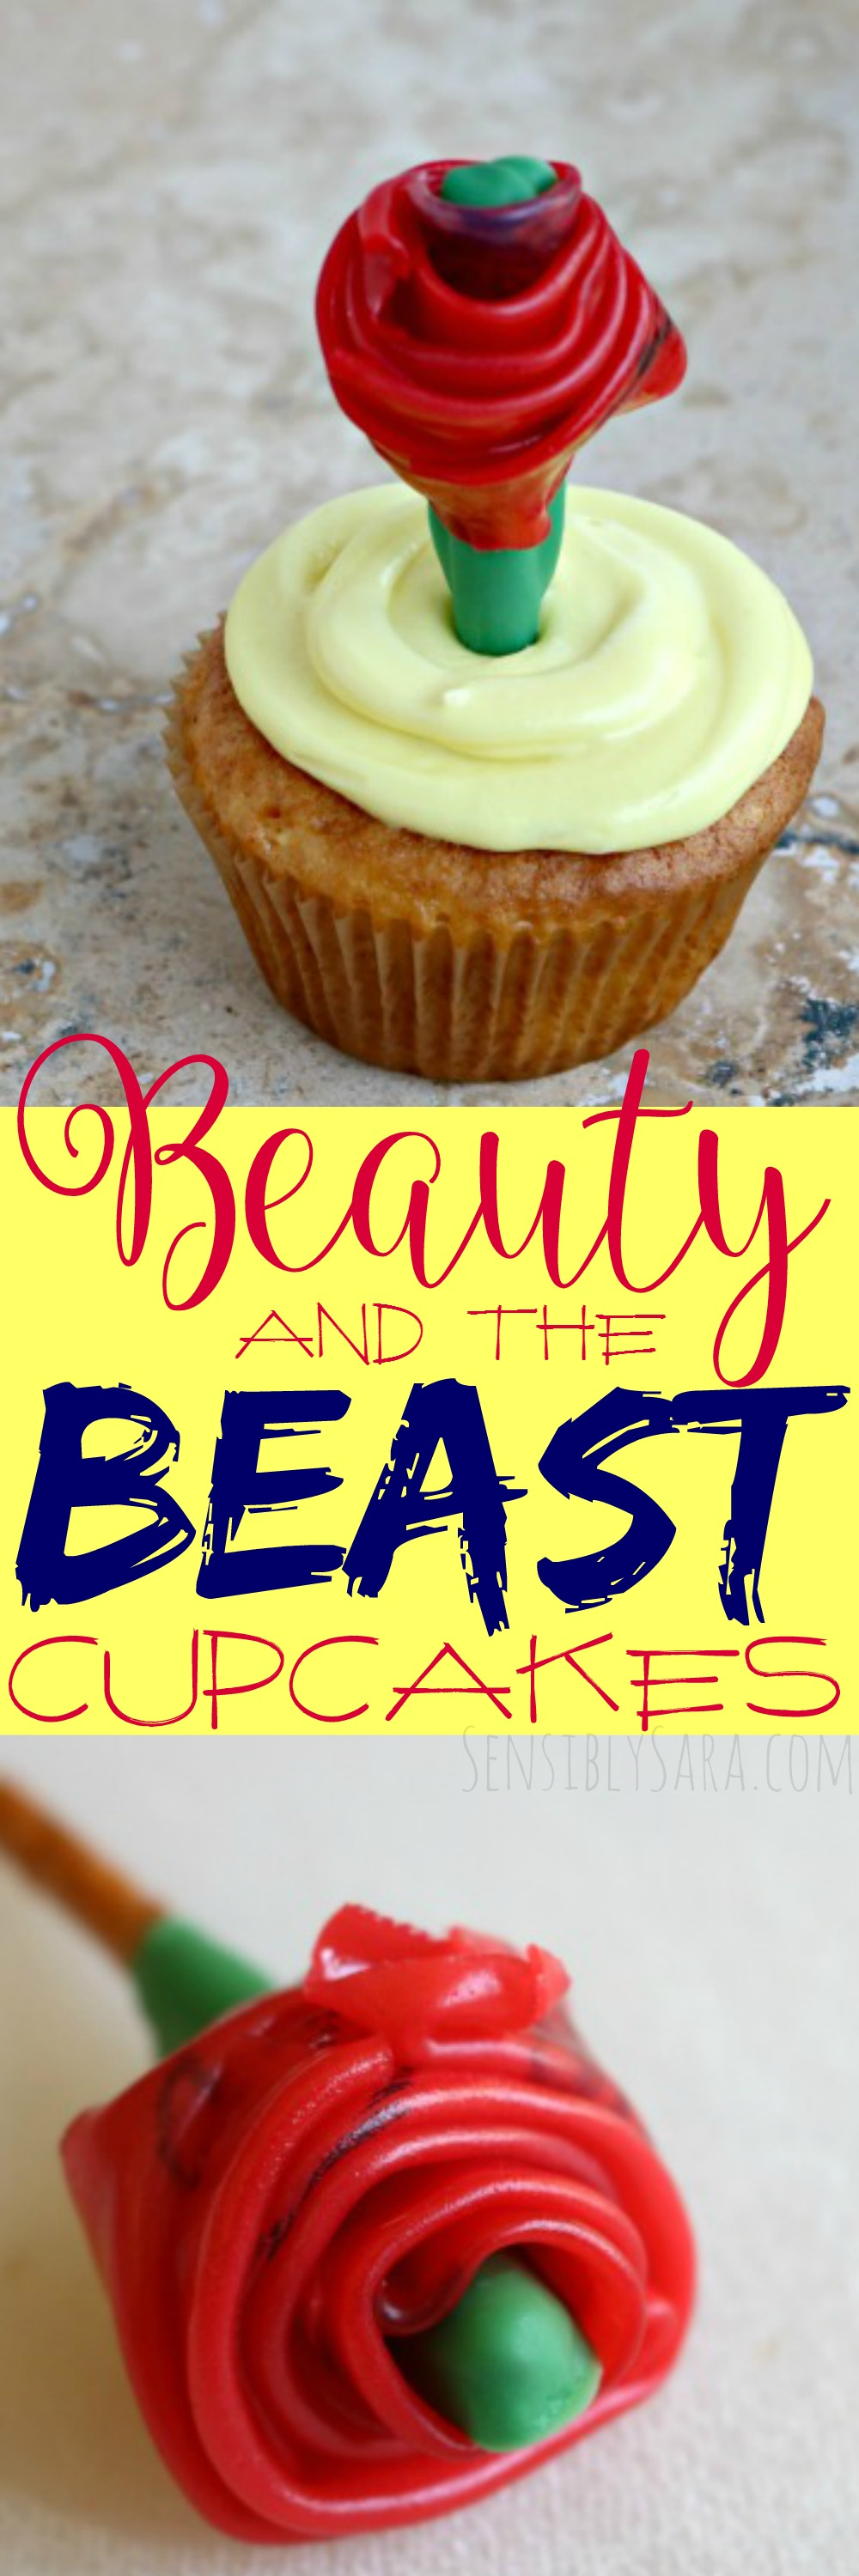 Beauty and the Beast Cupcakes | SensiblySara.com